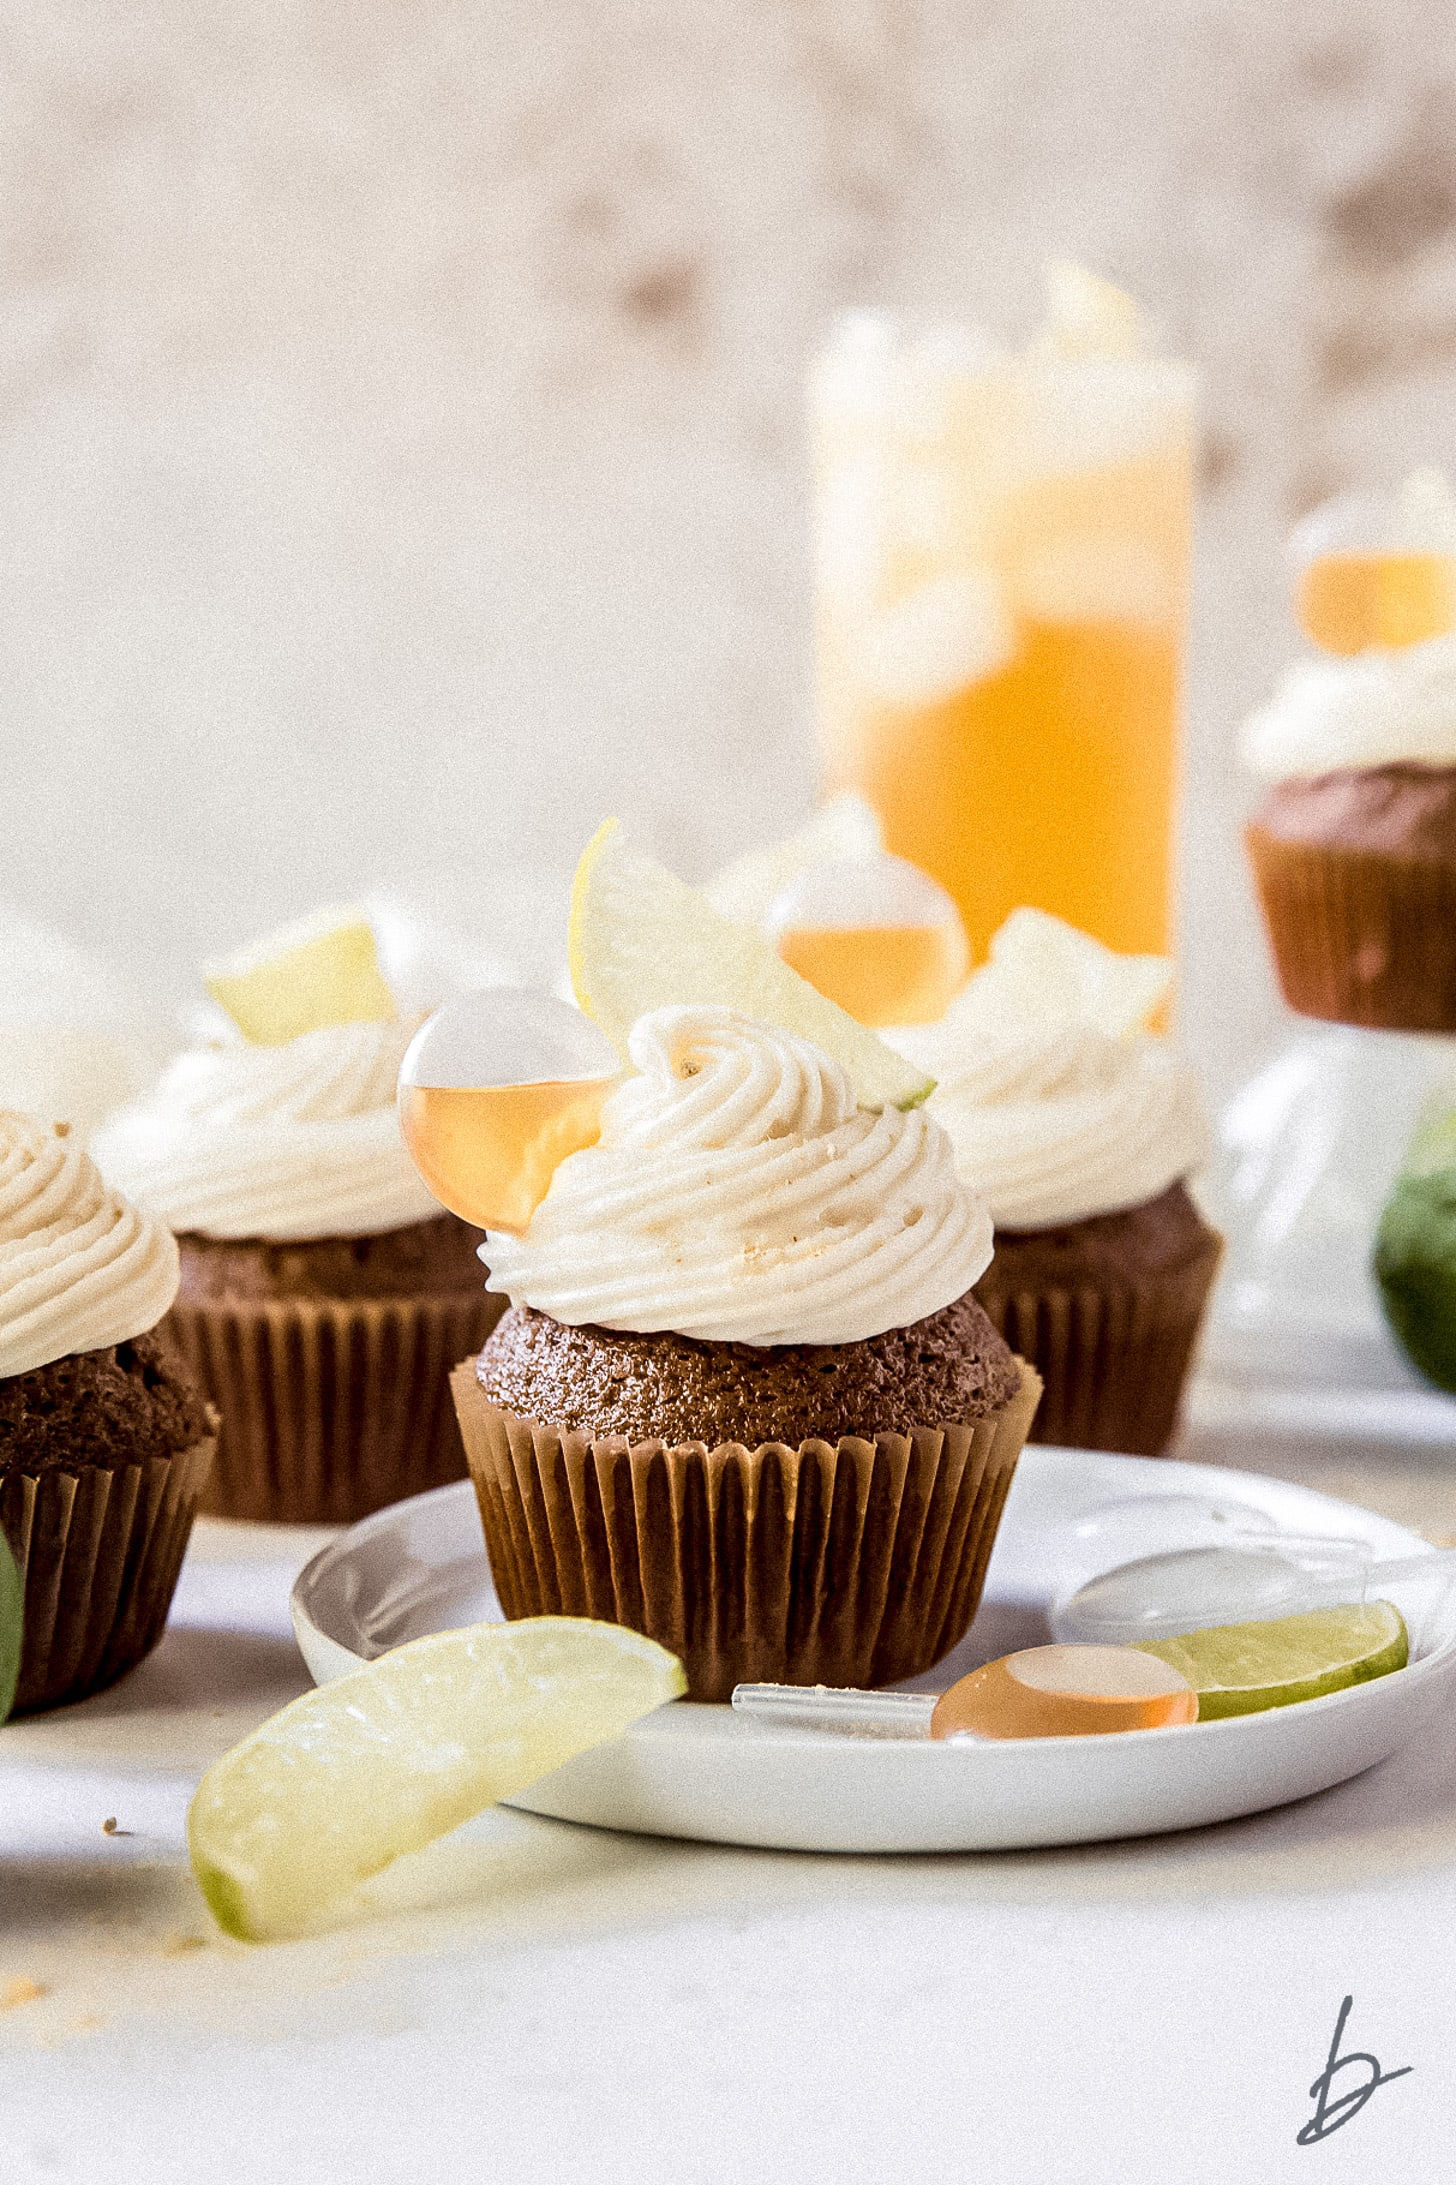 Dark and Stormy Cupcakes inspired by the Bermudan cocktail with Gosling's Rum | Recipe by @haleydwilliams